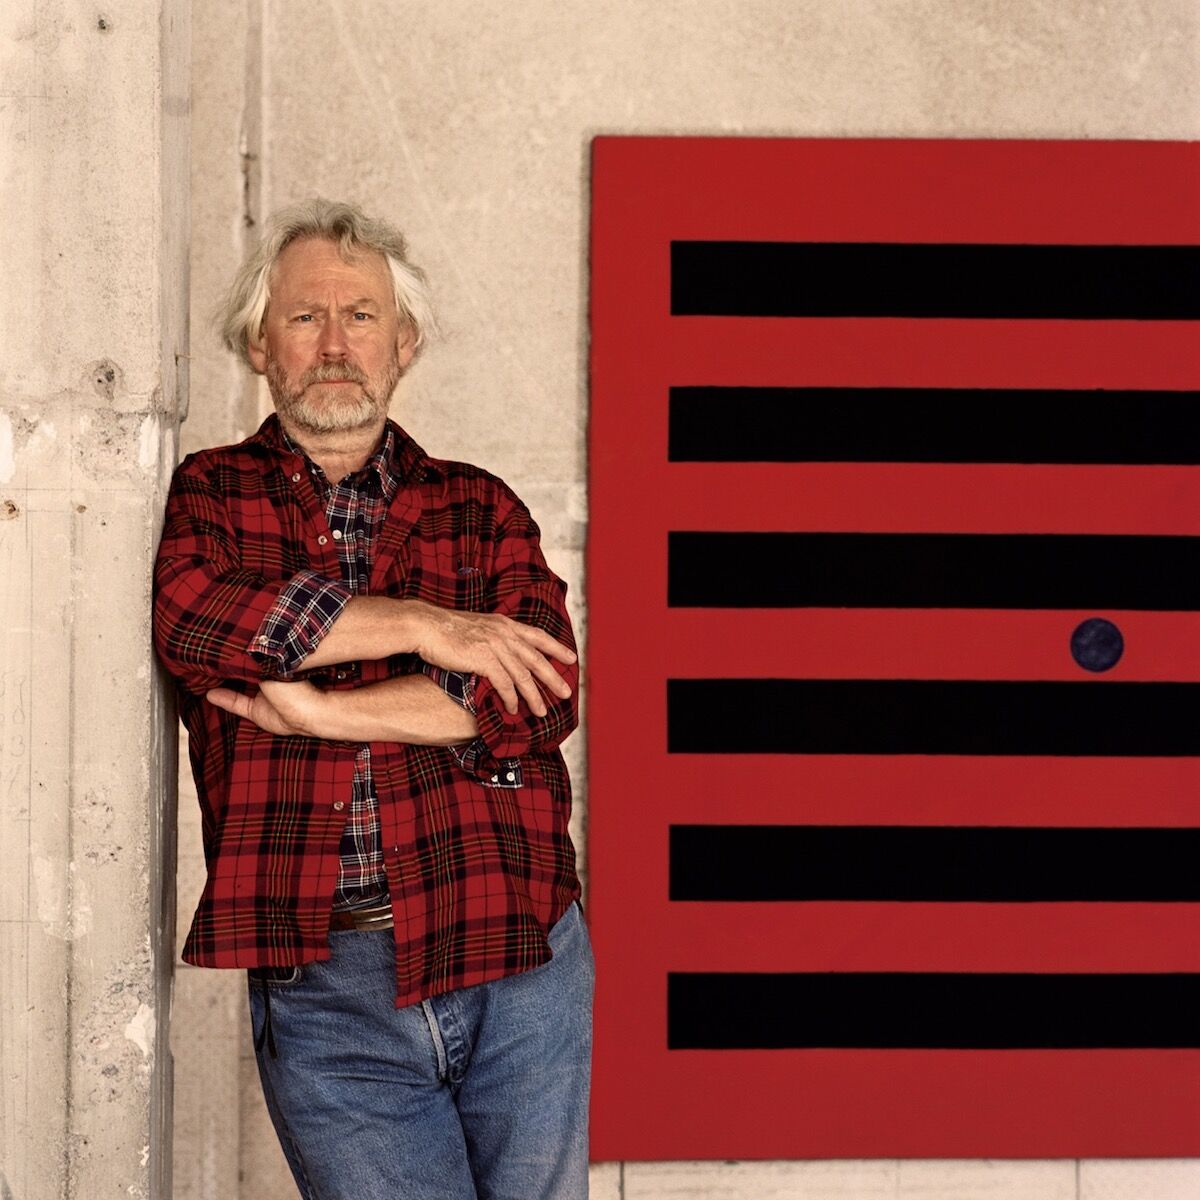 Donald Judd. Art © Judd Foundation/DACS. Photo by Laura Wilson, courtesy Galerie Thaddaeus Ropac, London, Paris, Salzburg